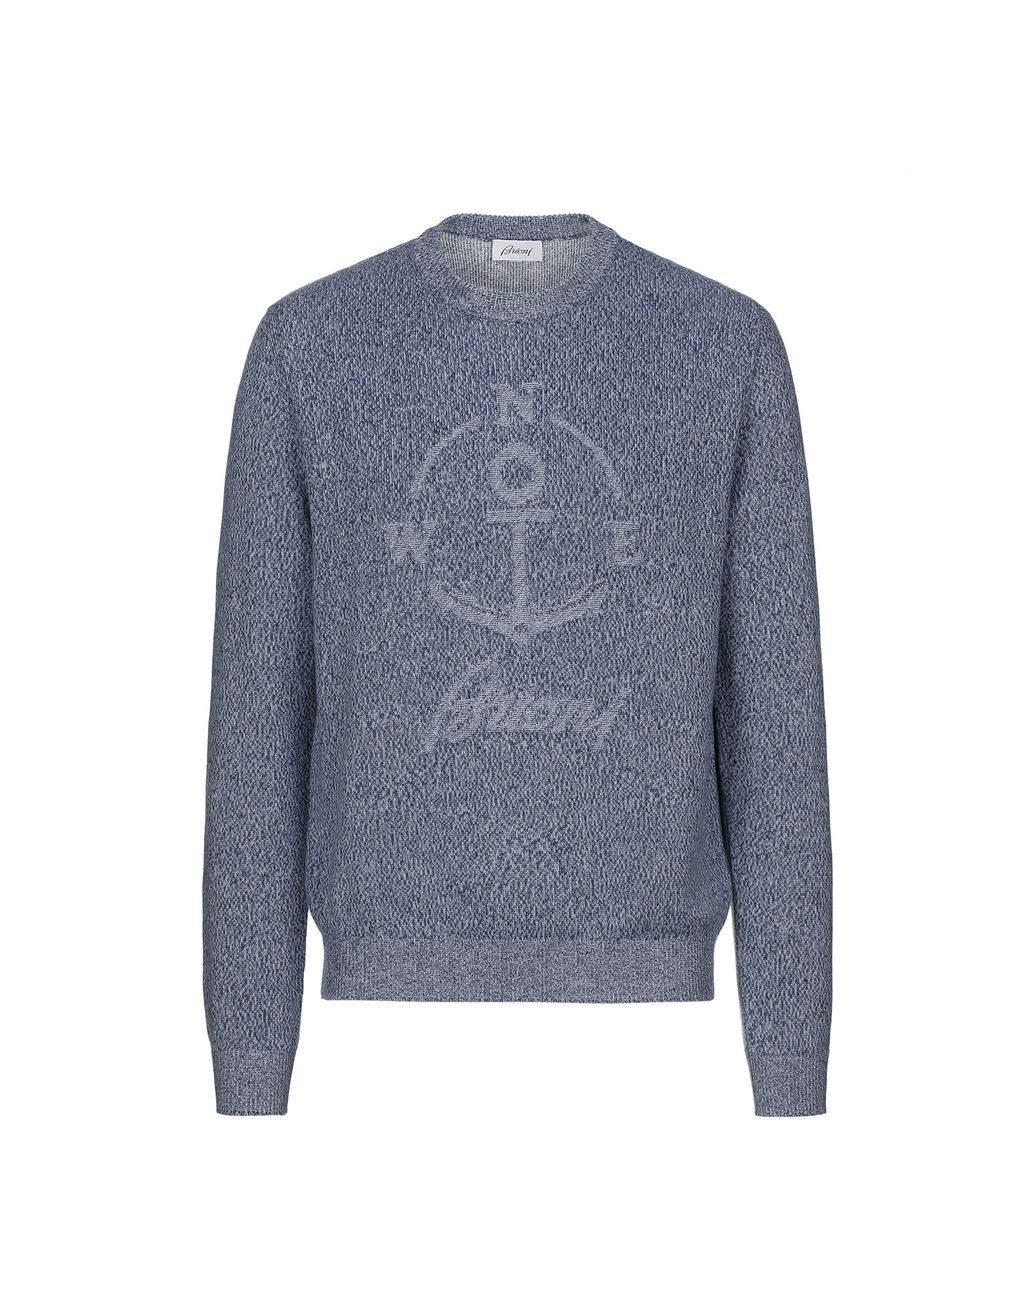 BRIONI Light Blue Mouline Anchor Sweater Knitwear Man f